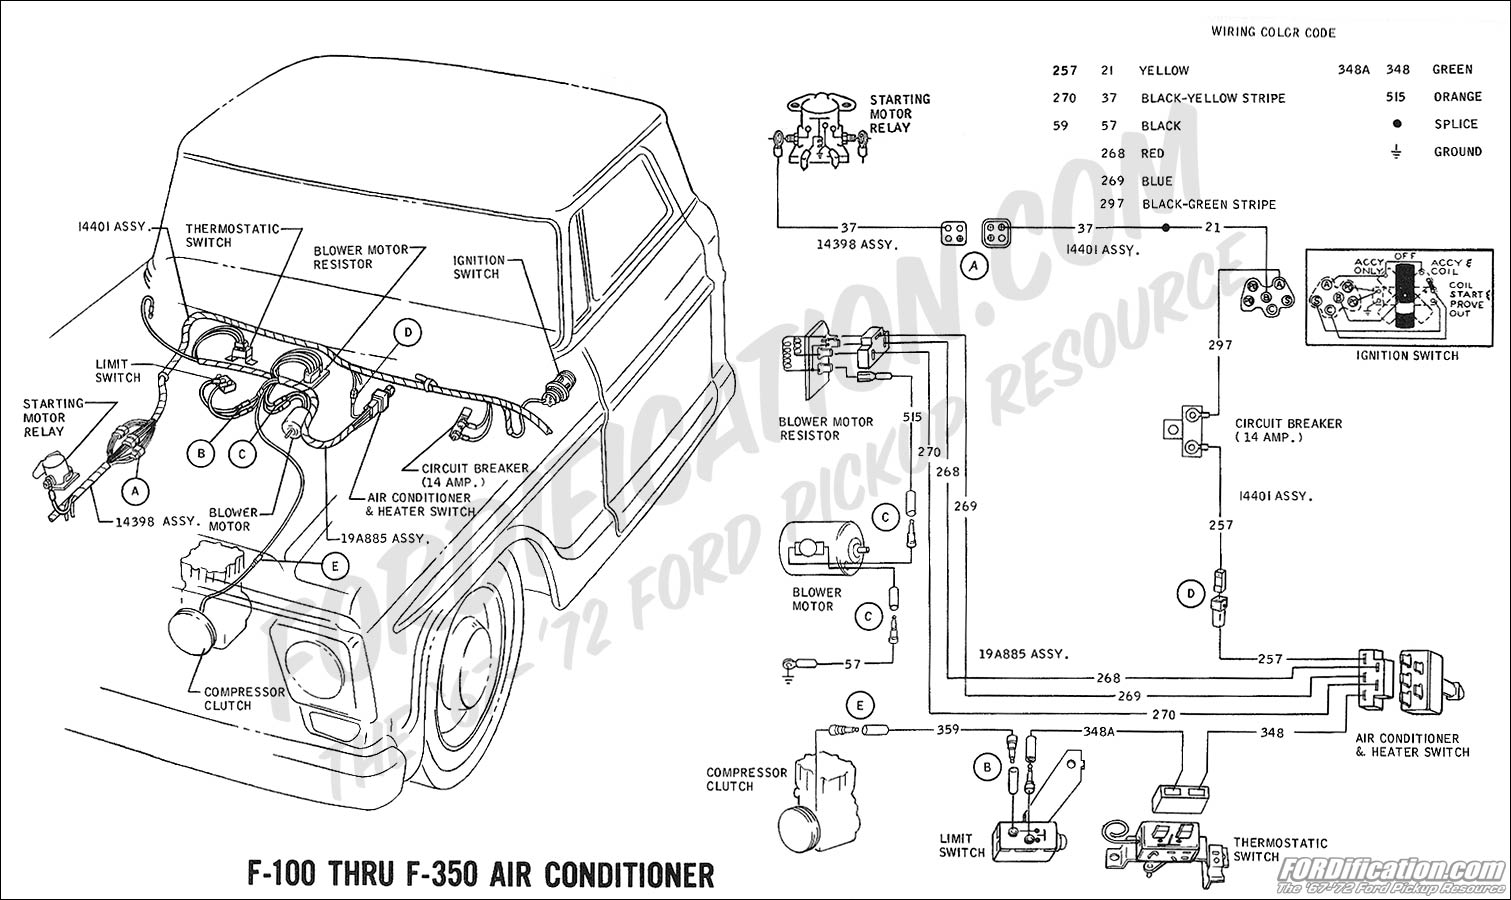 Scosche Wiring Harness Diagram Interface Library Of besides B F C B also Wiring Heater additionally Wiring Charging additionally Taill  Wiring. on 1968 ford f 250 wiring diagram